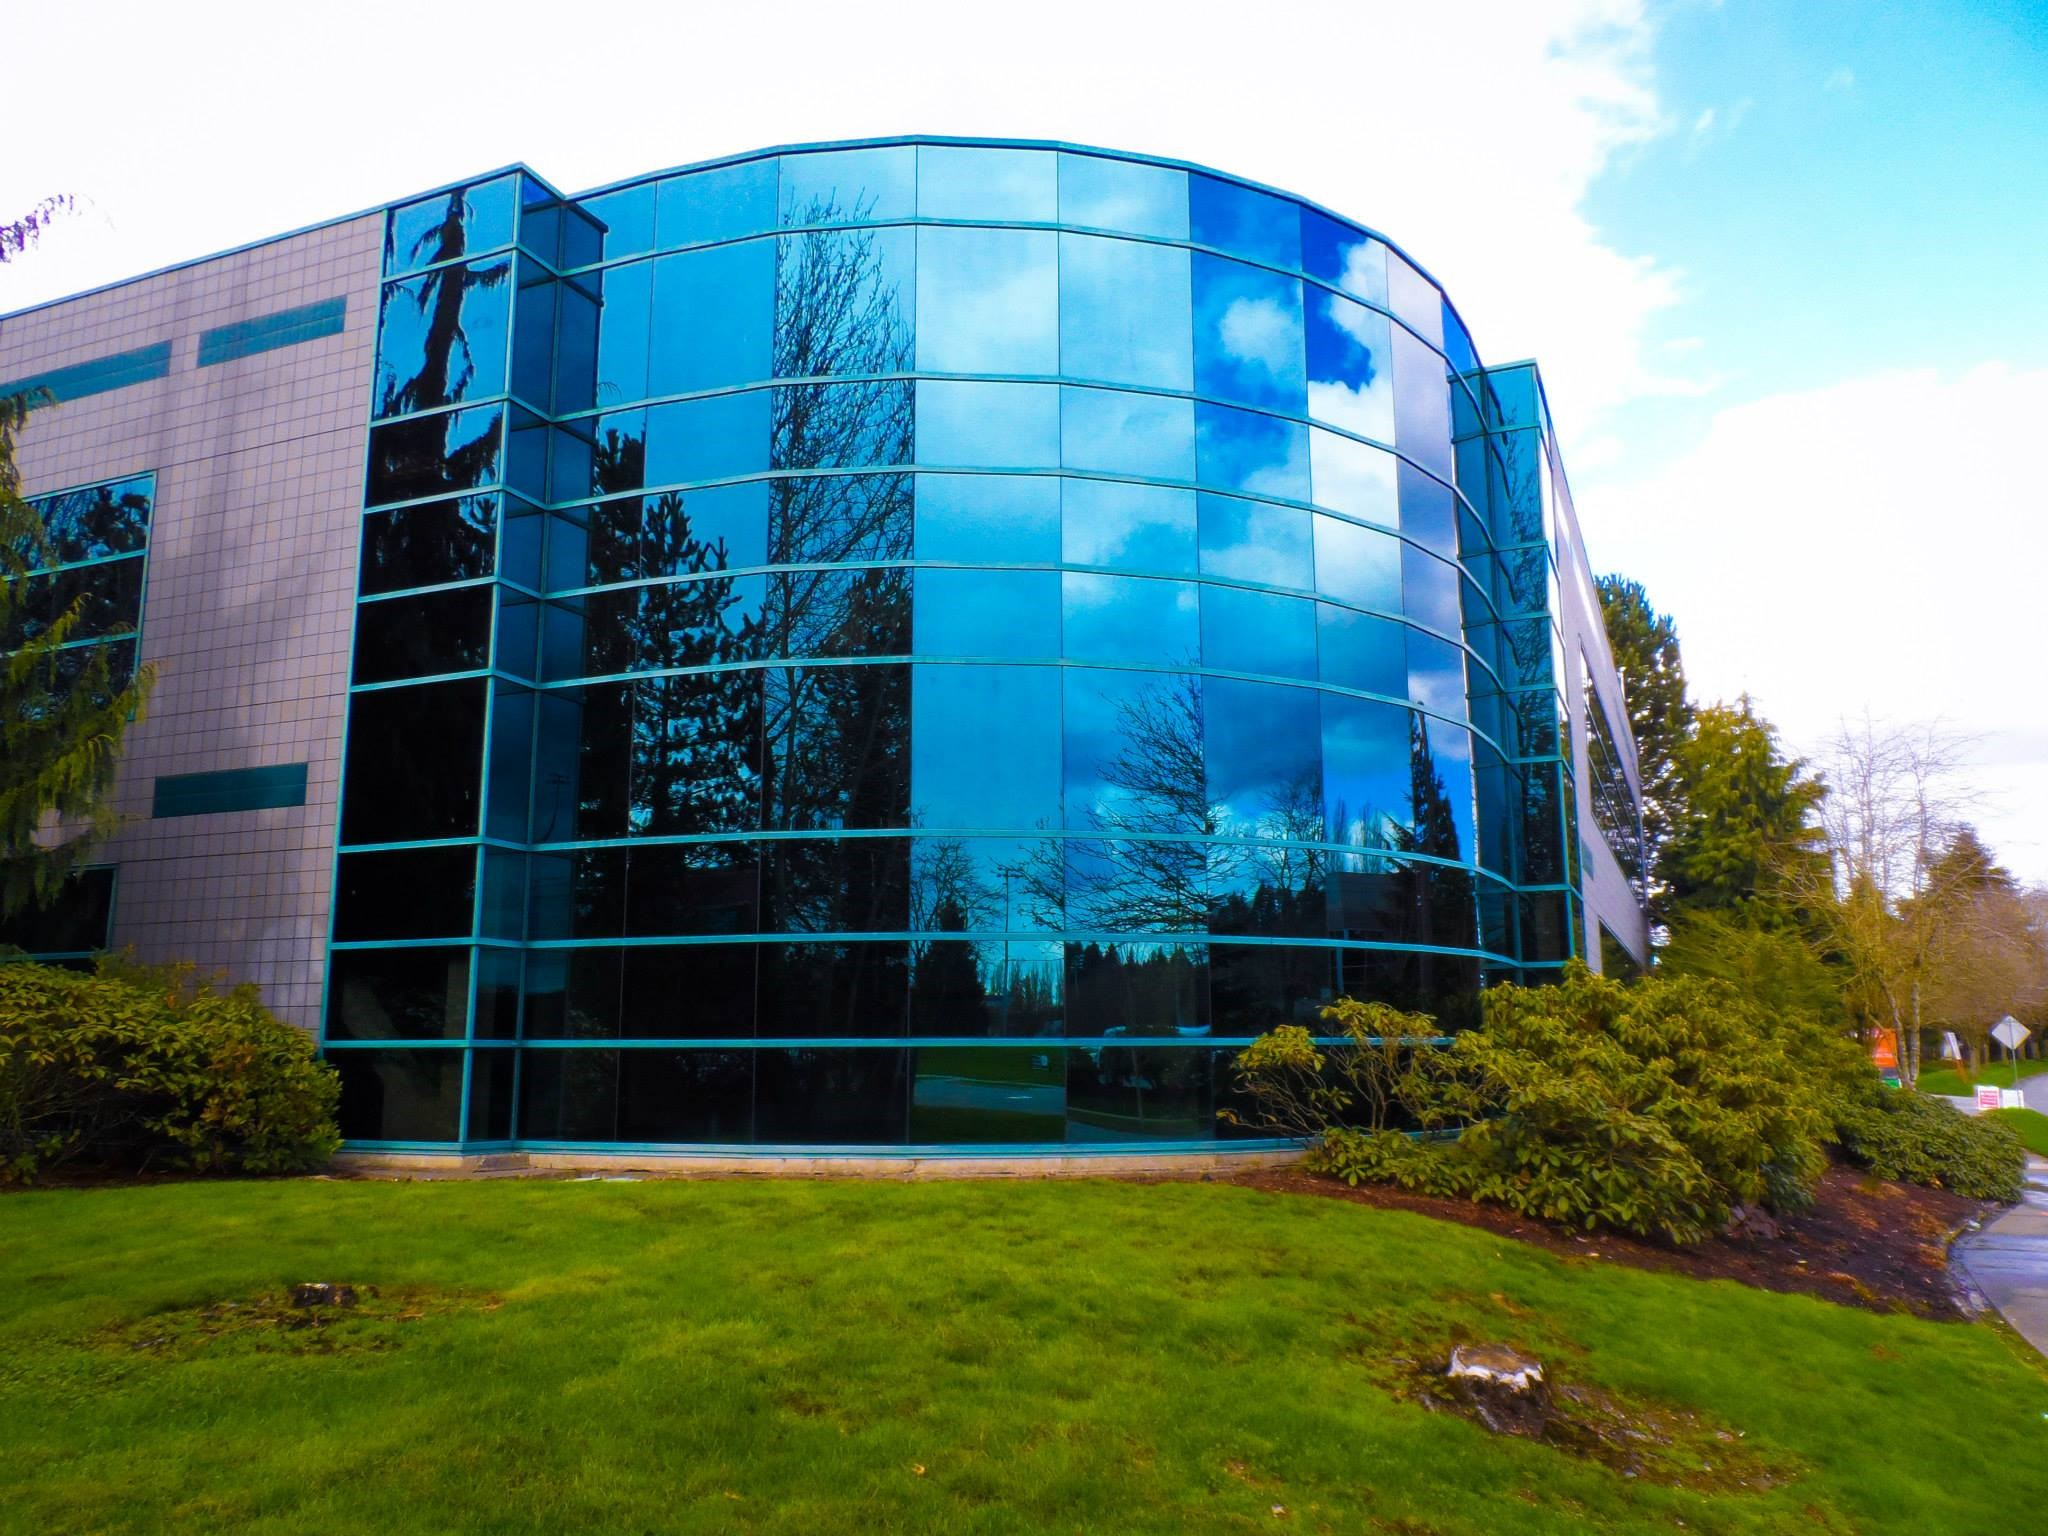 Reflective Window Tint for Office